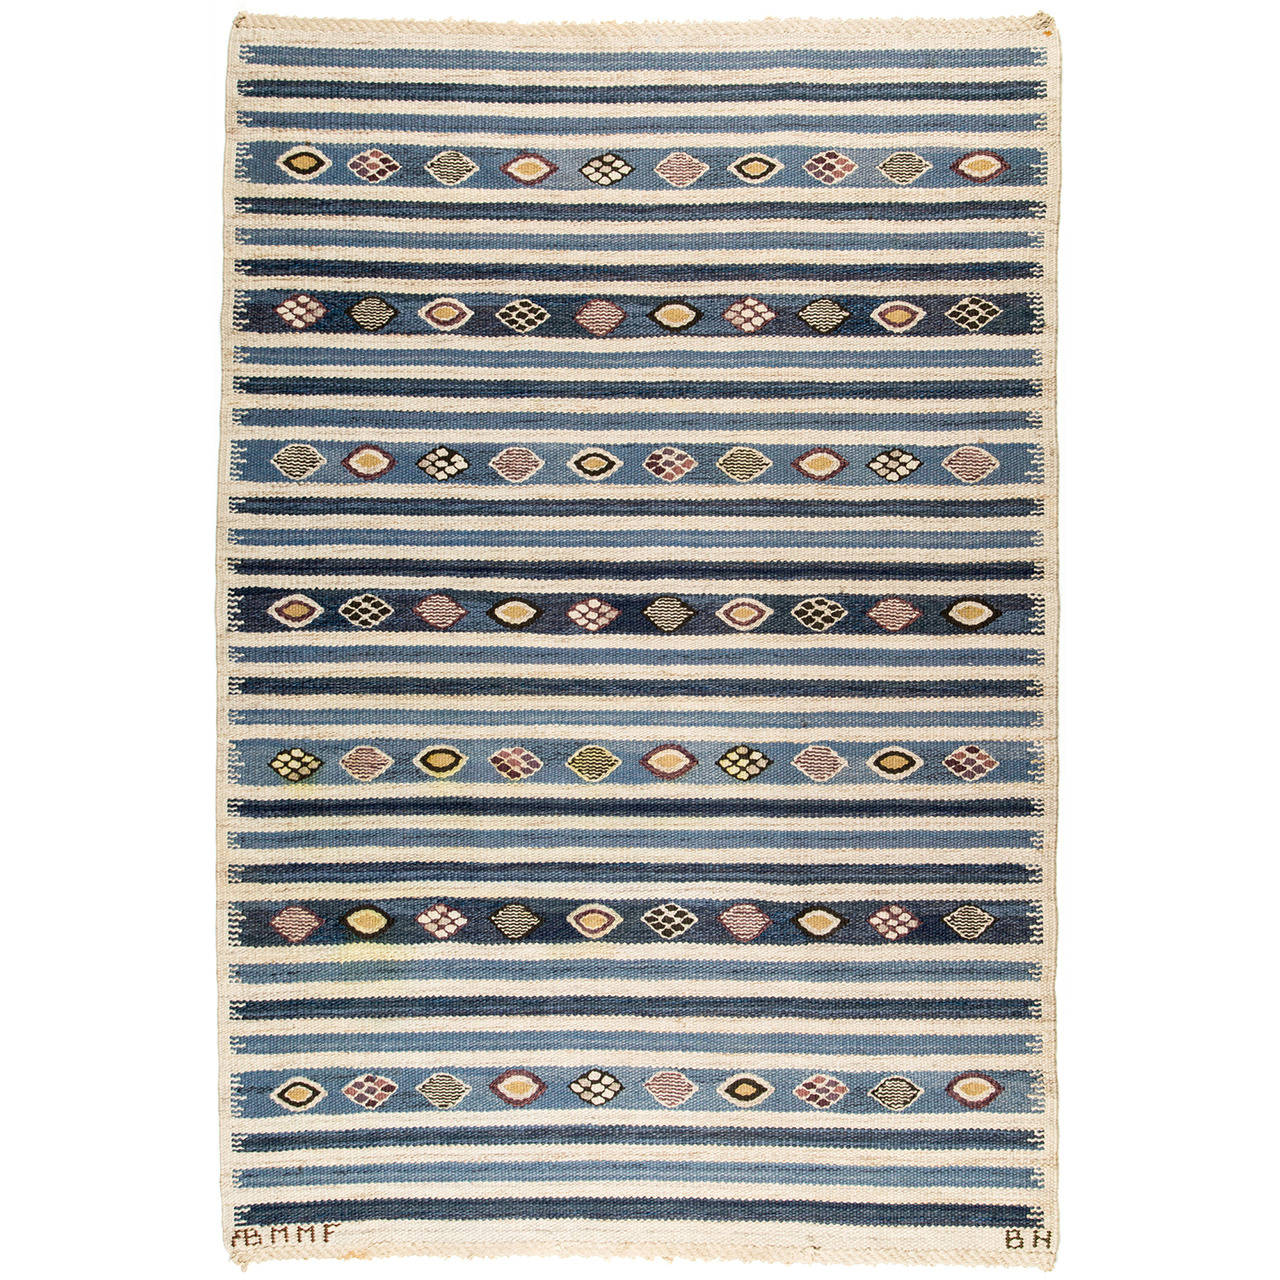 Barbro Nilsson for Märta Måås-Fjetterström AB Carpet, 1940s - The Exchange Int